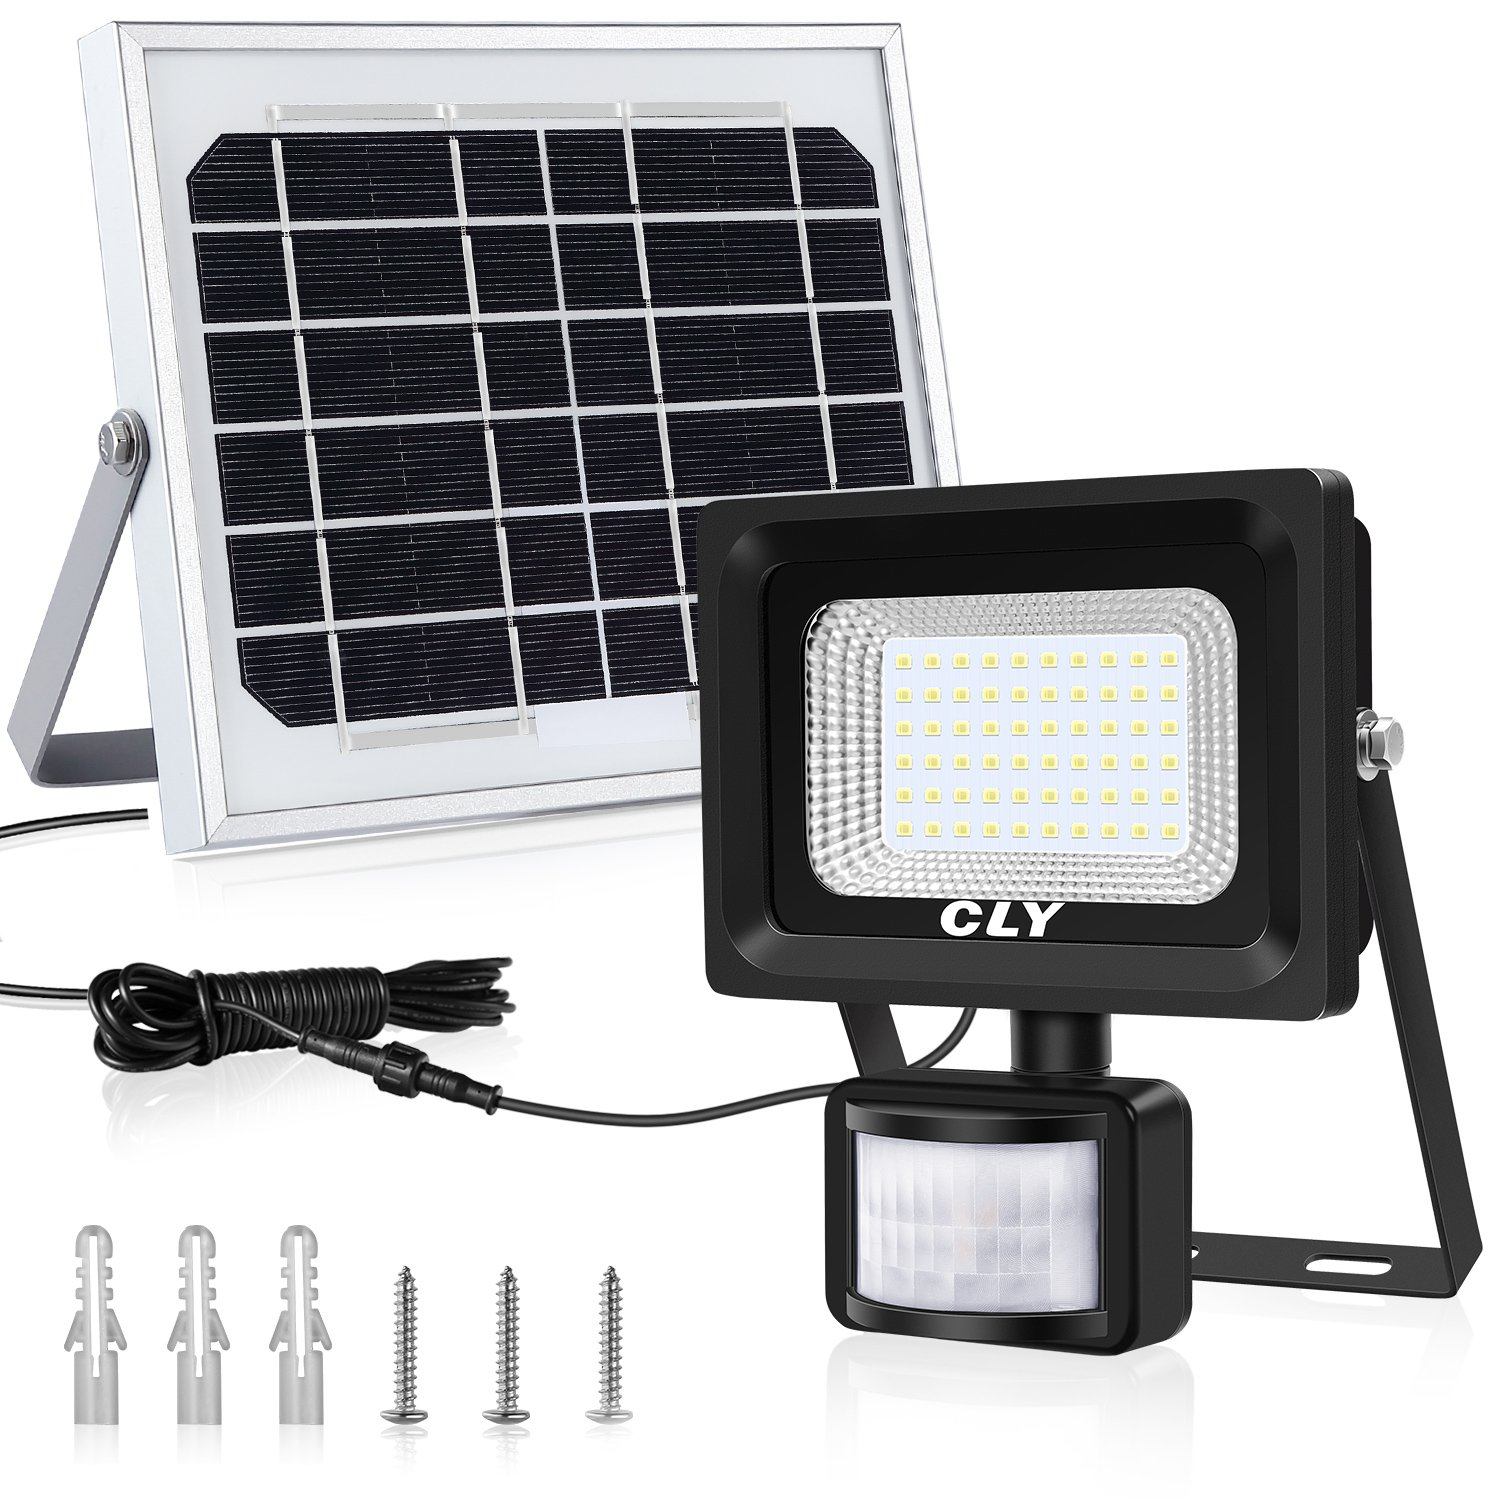 Cly 60 LEDs Solar Light Motion Sensor Security Light, Daylight White, IP66 Waterproof, Solar PIR Lights Outdoor Solar Sensor Lights, Solar Flood Light [Energy Class A++]